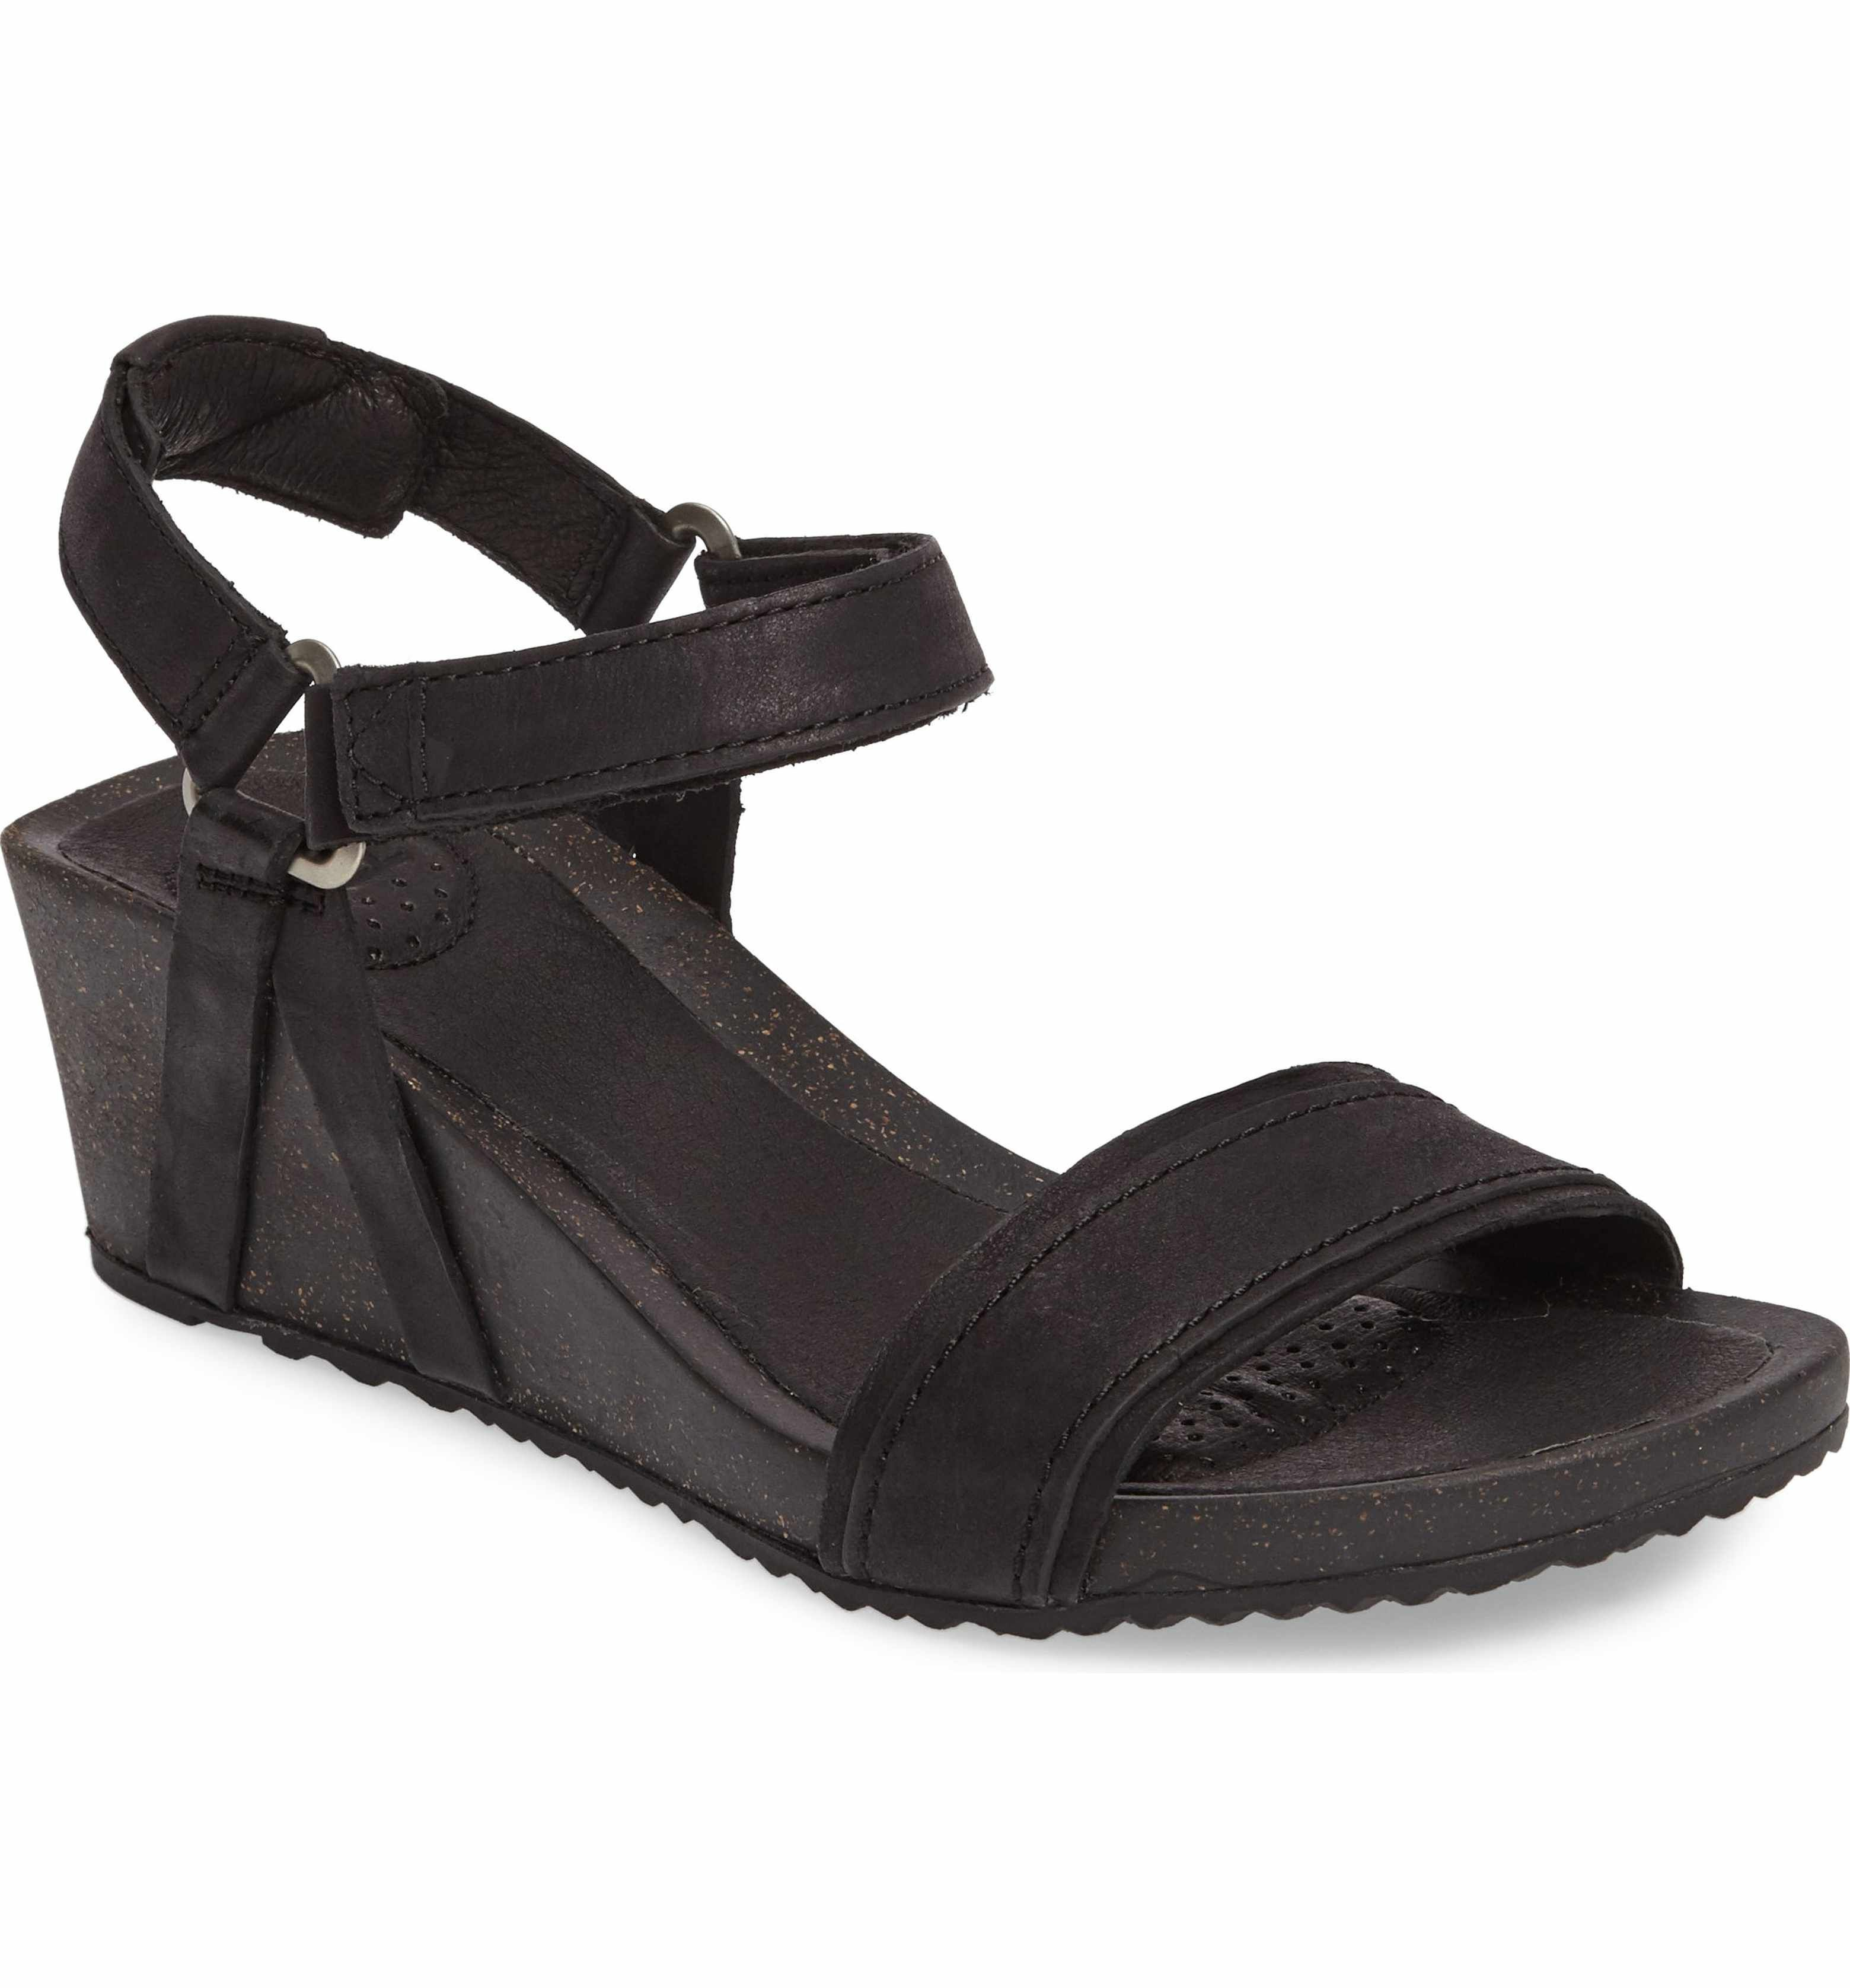 09451c76a Main Image - Teva Ysidro Stitch Wedge Sandal (Women)